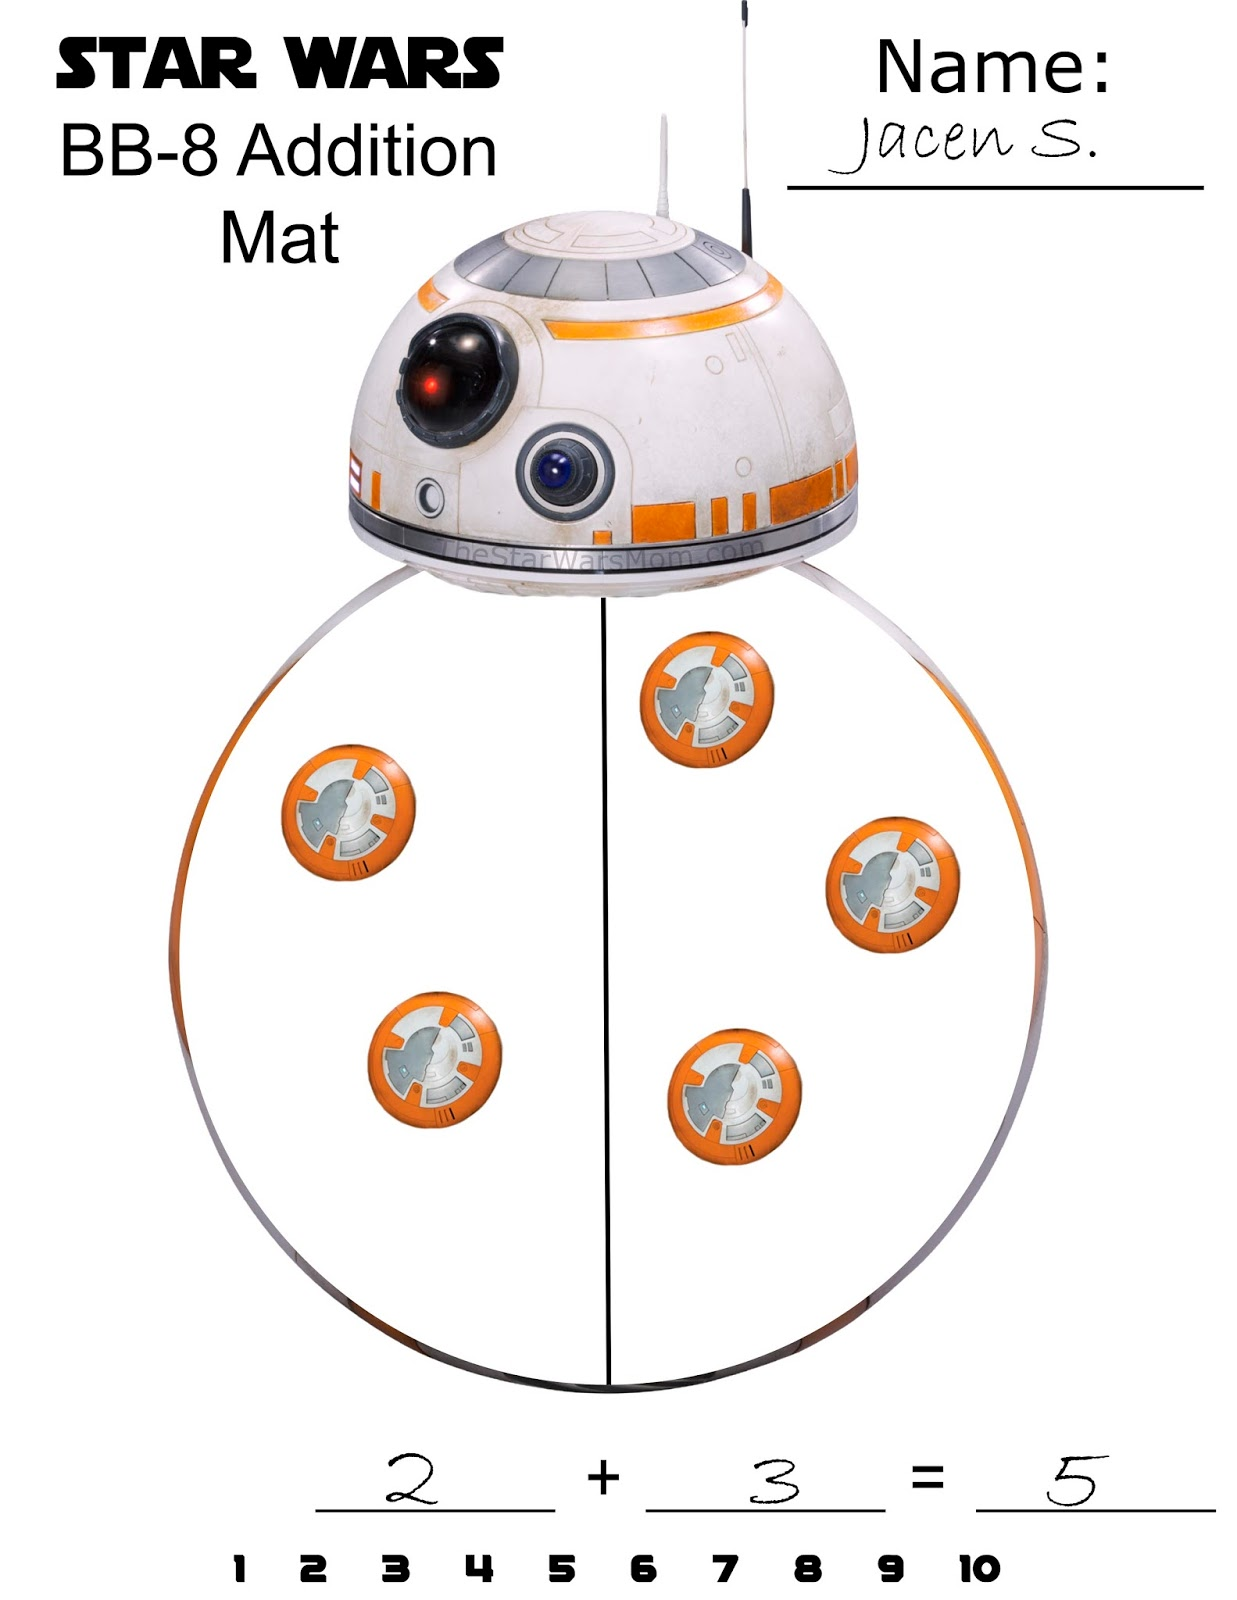 image regarding Bb 8 Printable identify BB-8 Math - Addition Mat - Star Wars Totally free Printable - The